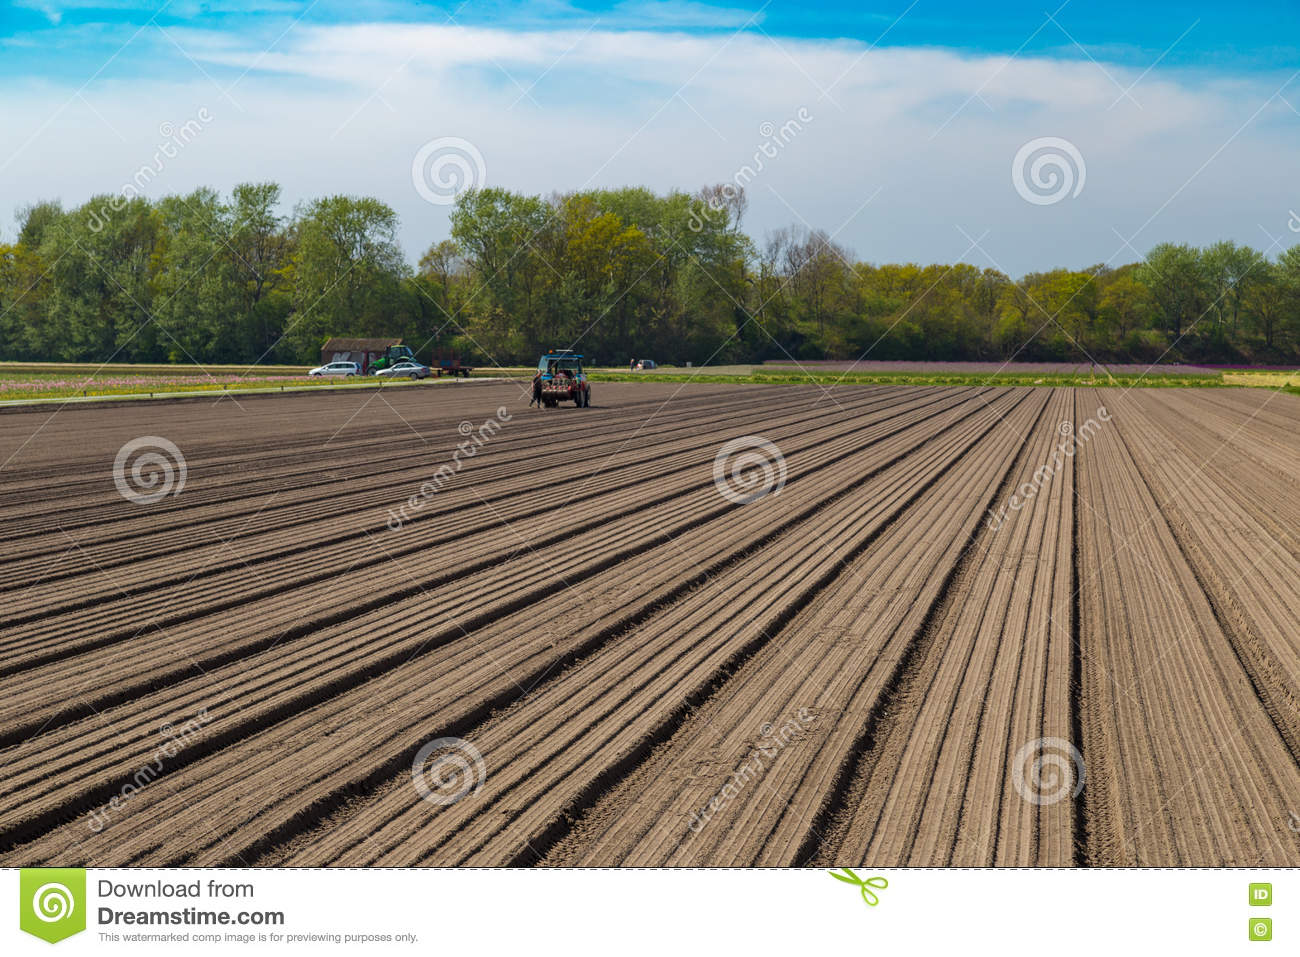 29d32bf6b Tulip bulb field with bare soil and tractor after harvest near village of  Lisse, the Netherlands